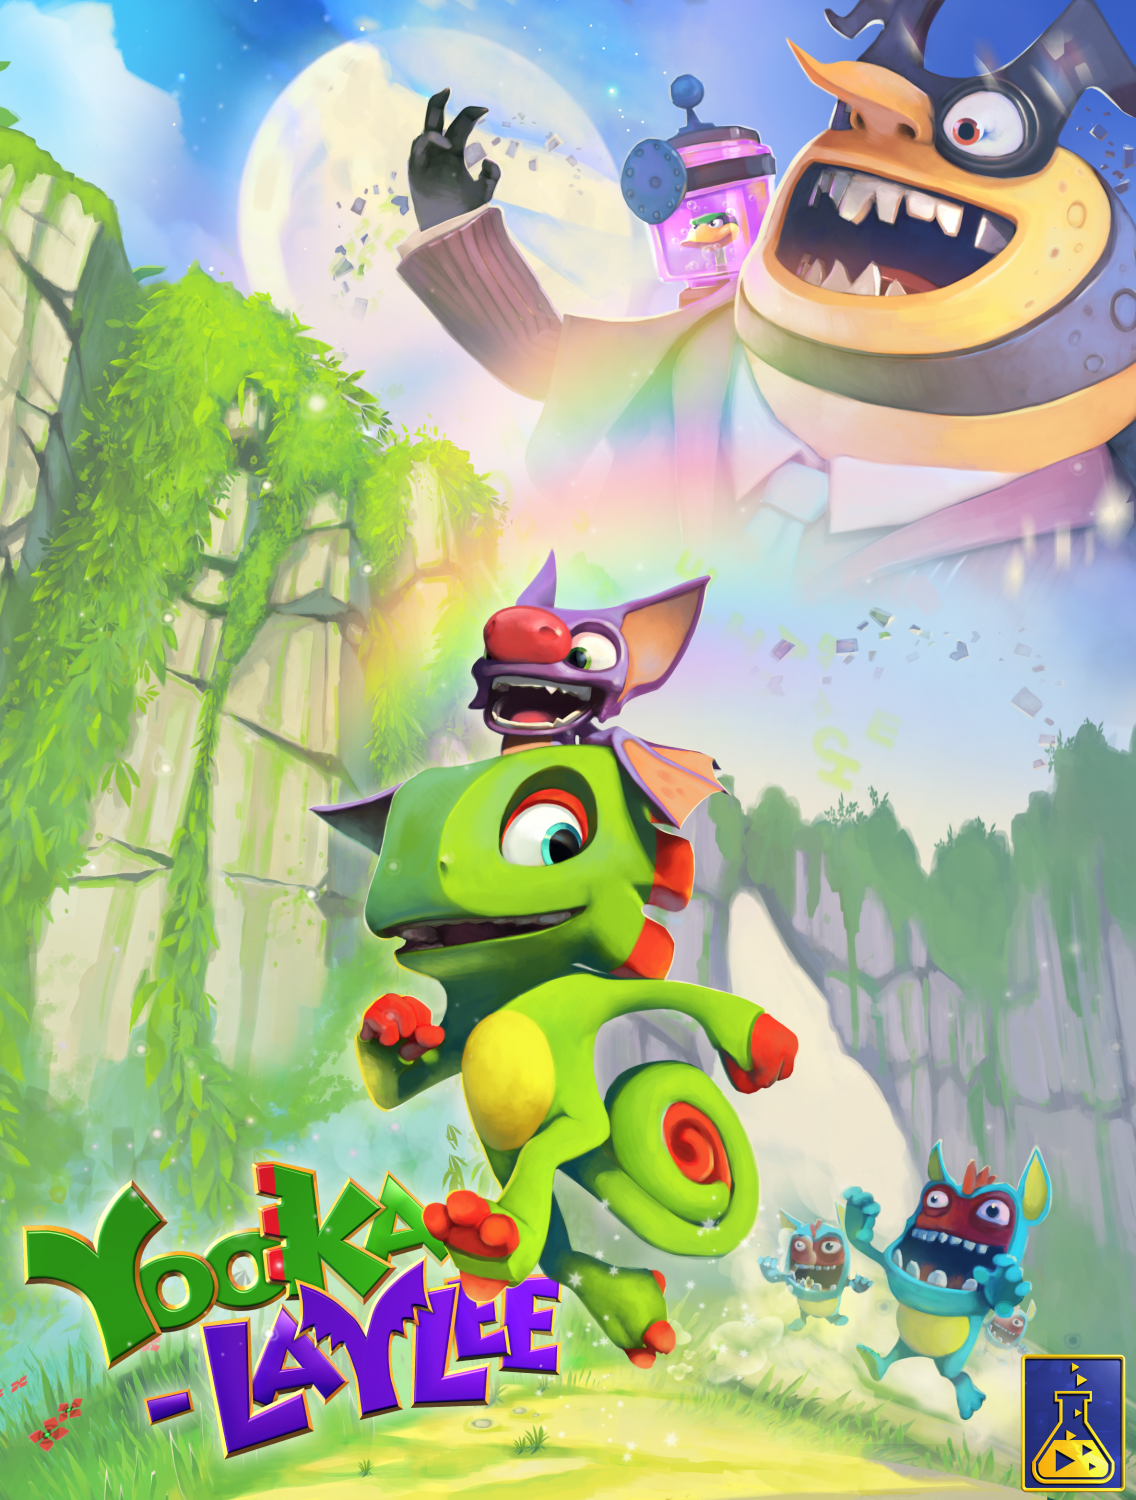 Poster for Yooka-Laylee